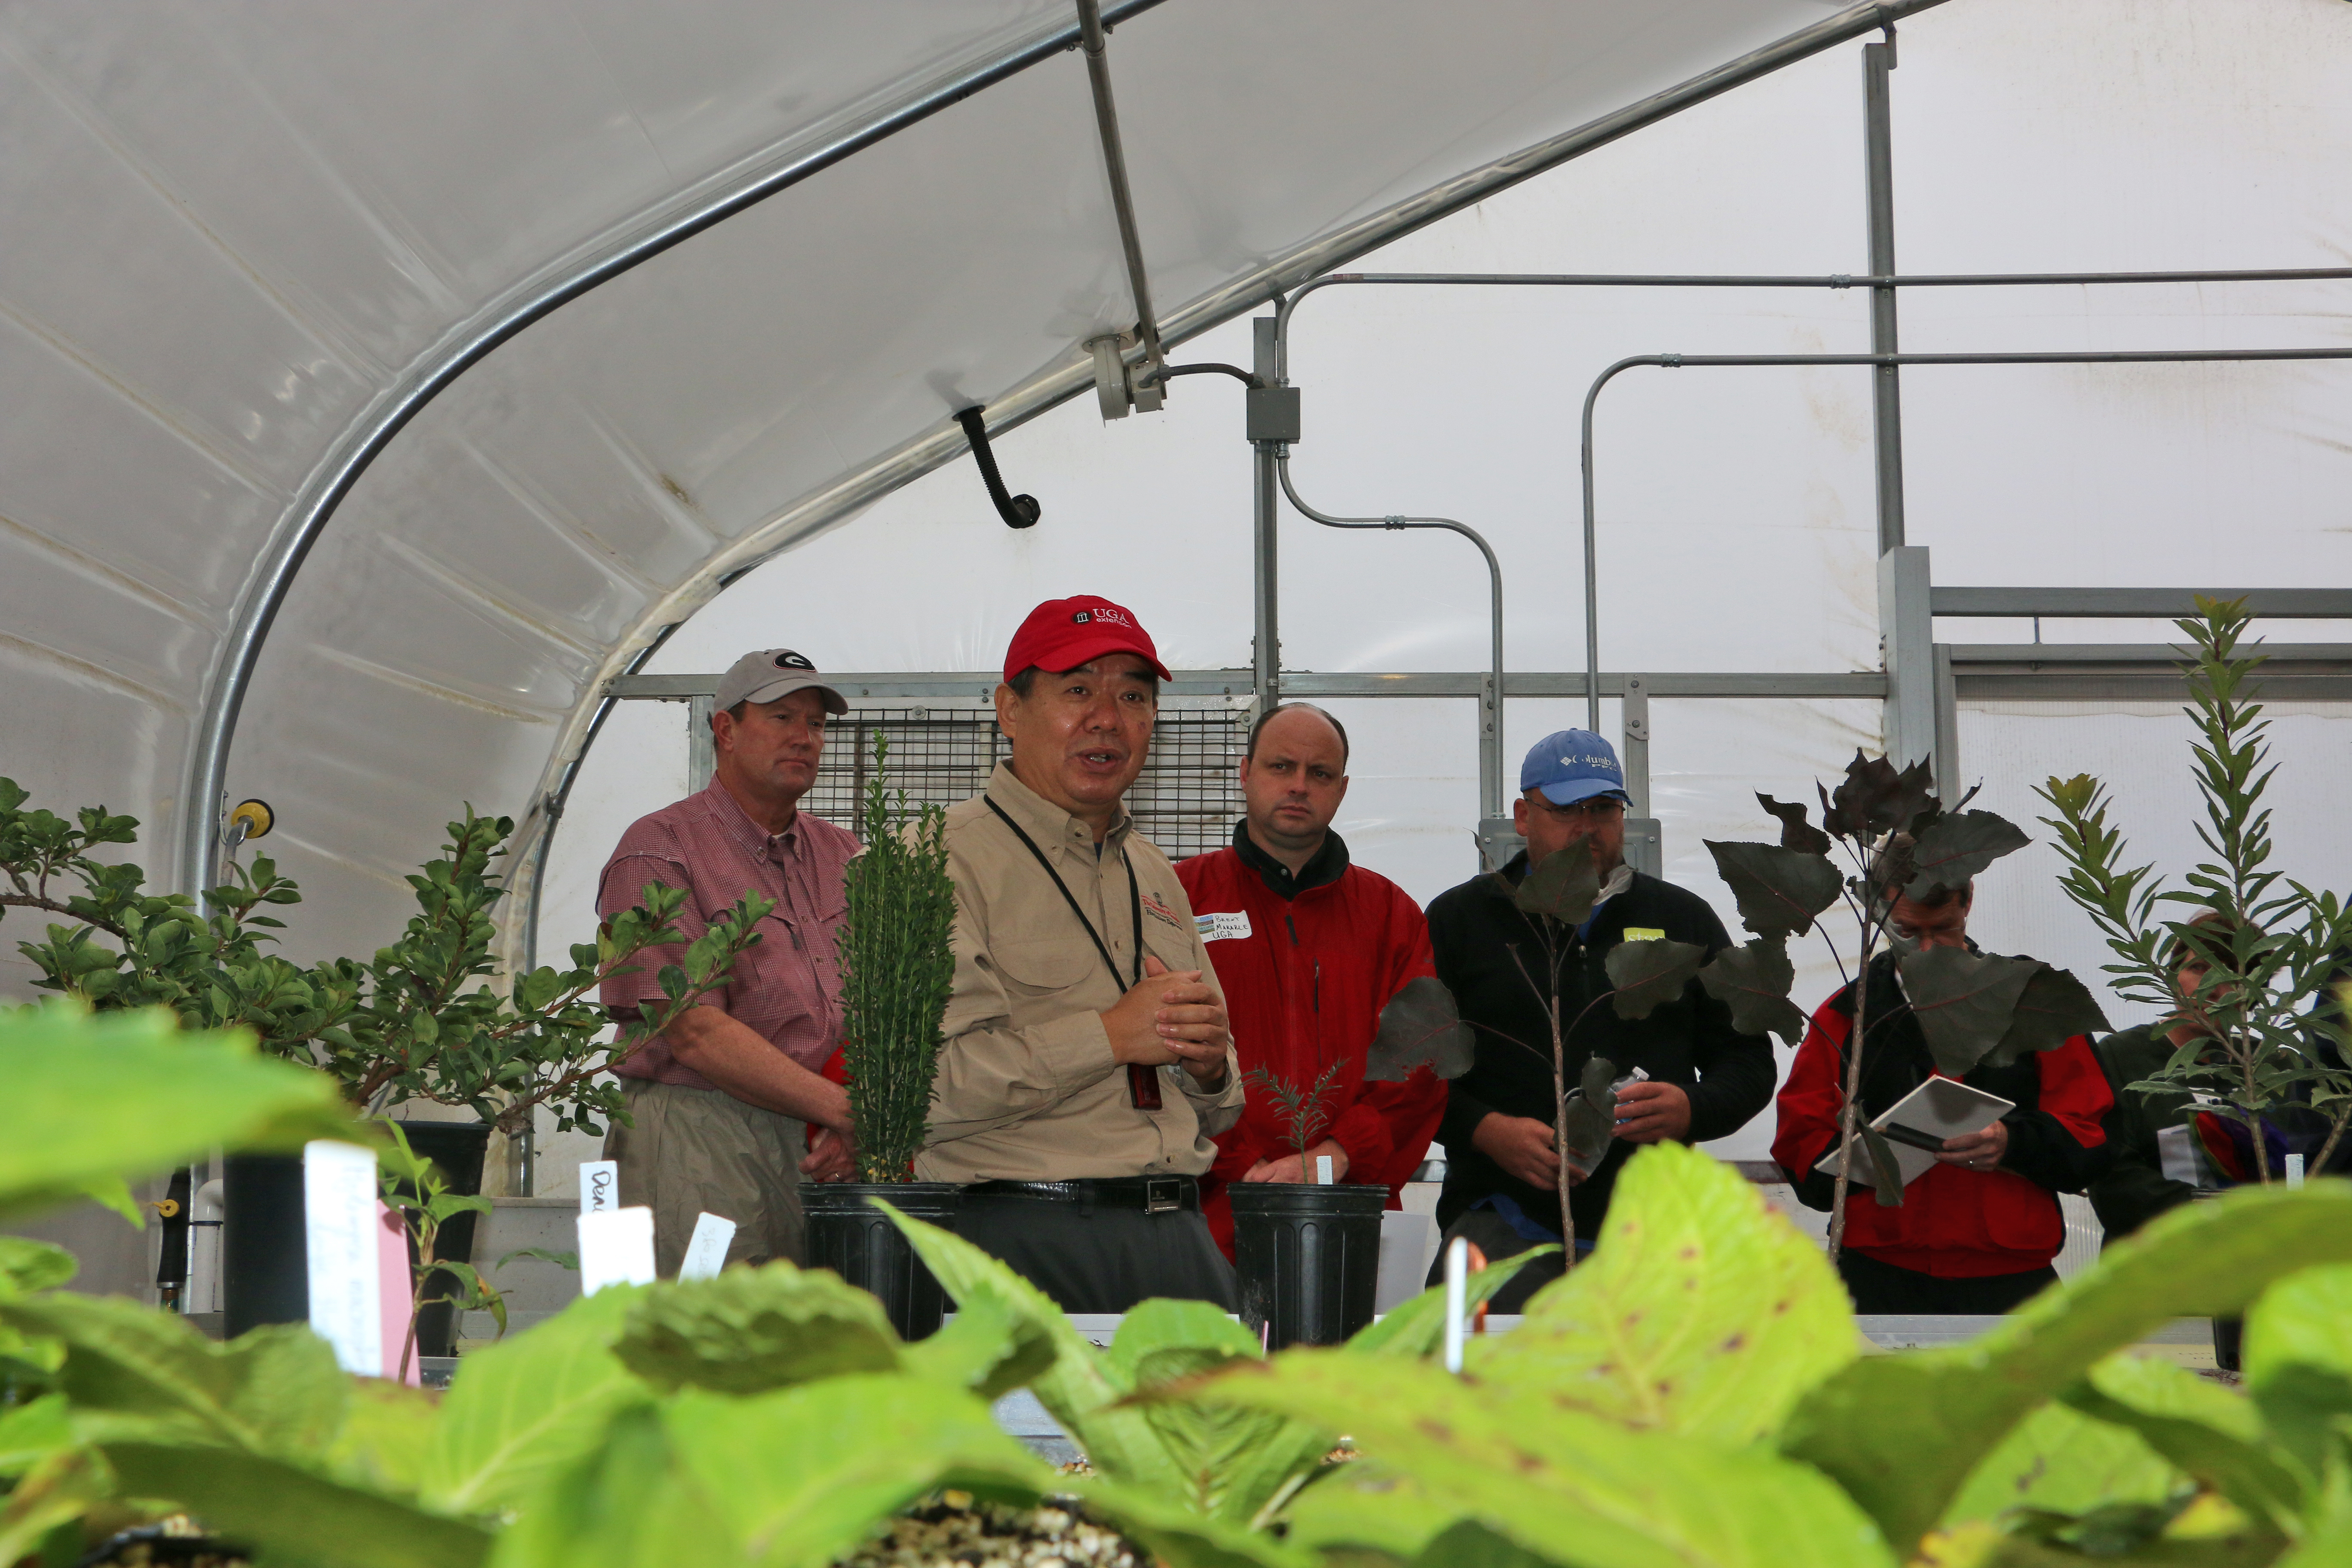 UGA horticulture Professor Donglin Zhang shows a group around his greenhouse at the Durham Horticulture Farm in Watkinsville during a past farm tour. The 2019 Horticulture Farm Tour will be held on Oct. 4 at 1221 Hog Mountain Road.